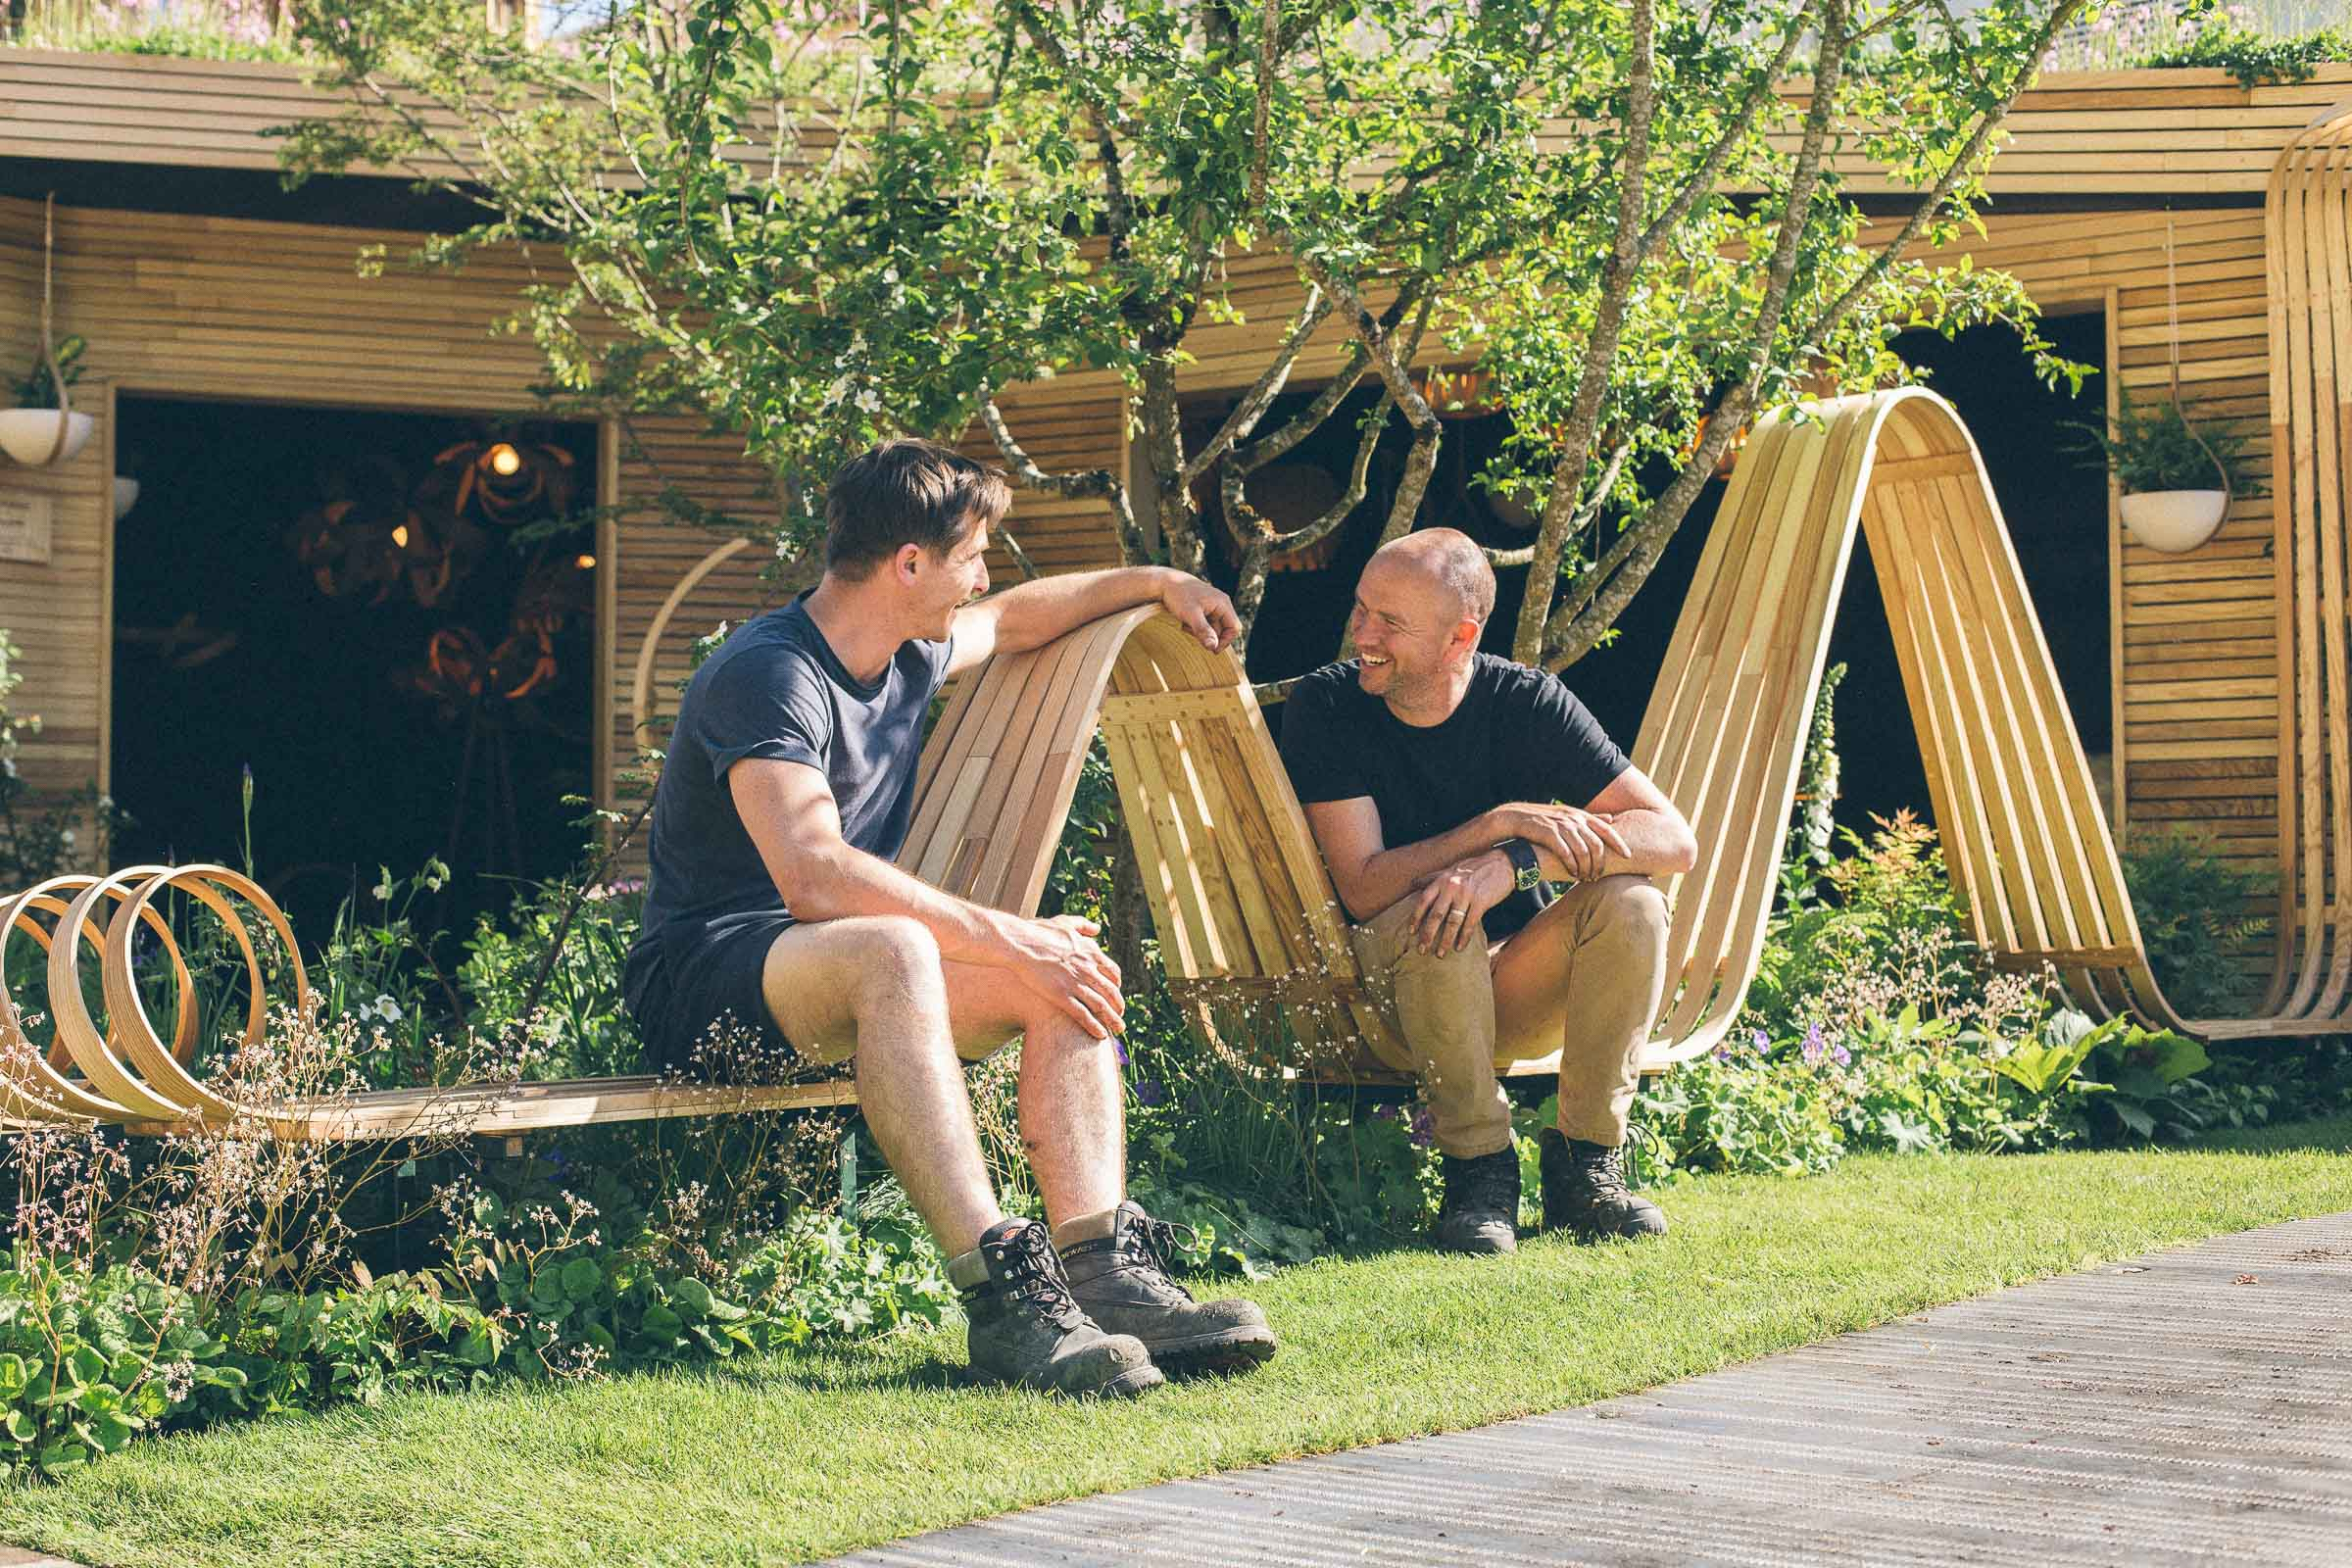 Tom Raffield & Darren Hawkes at RHS Chelsea Flower Show 2018